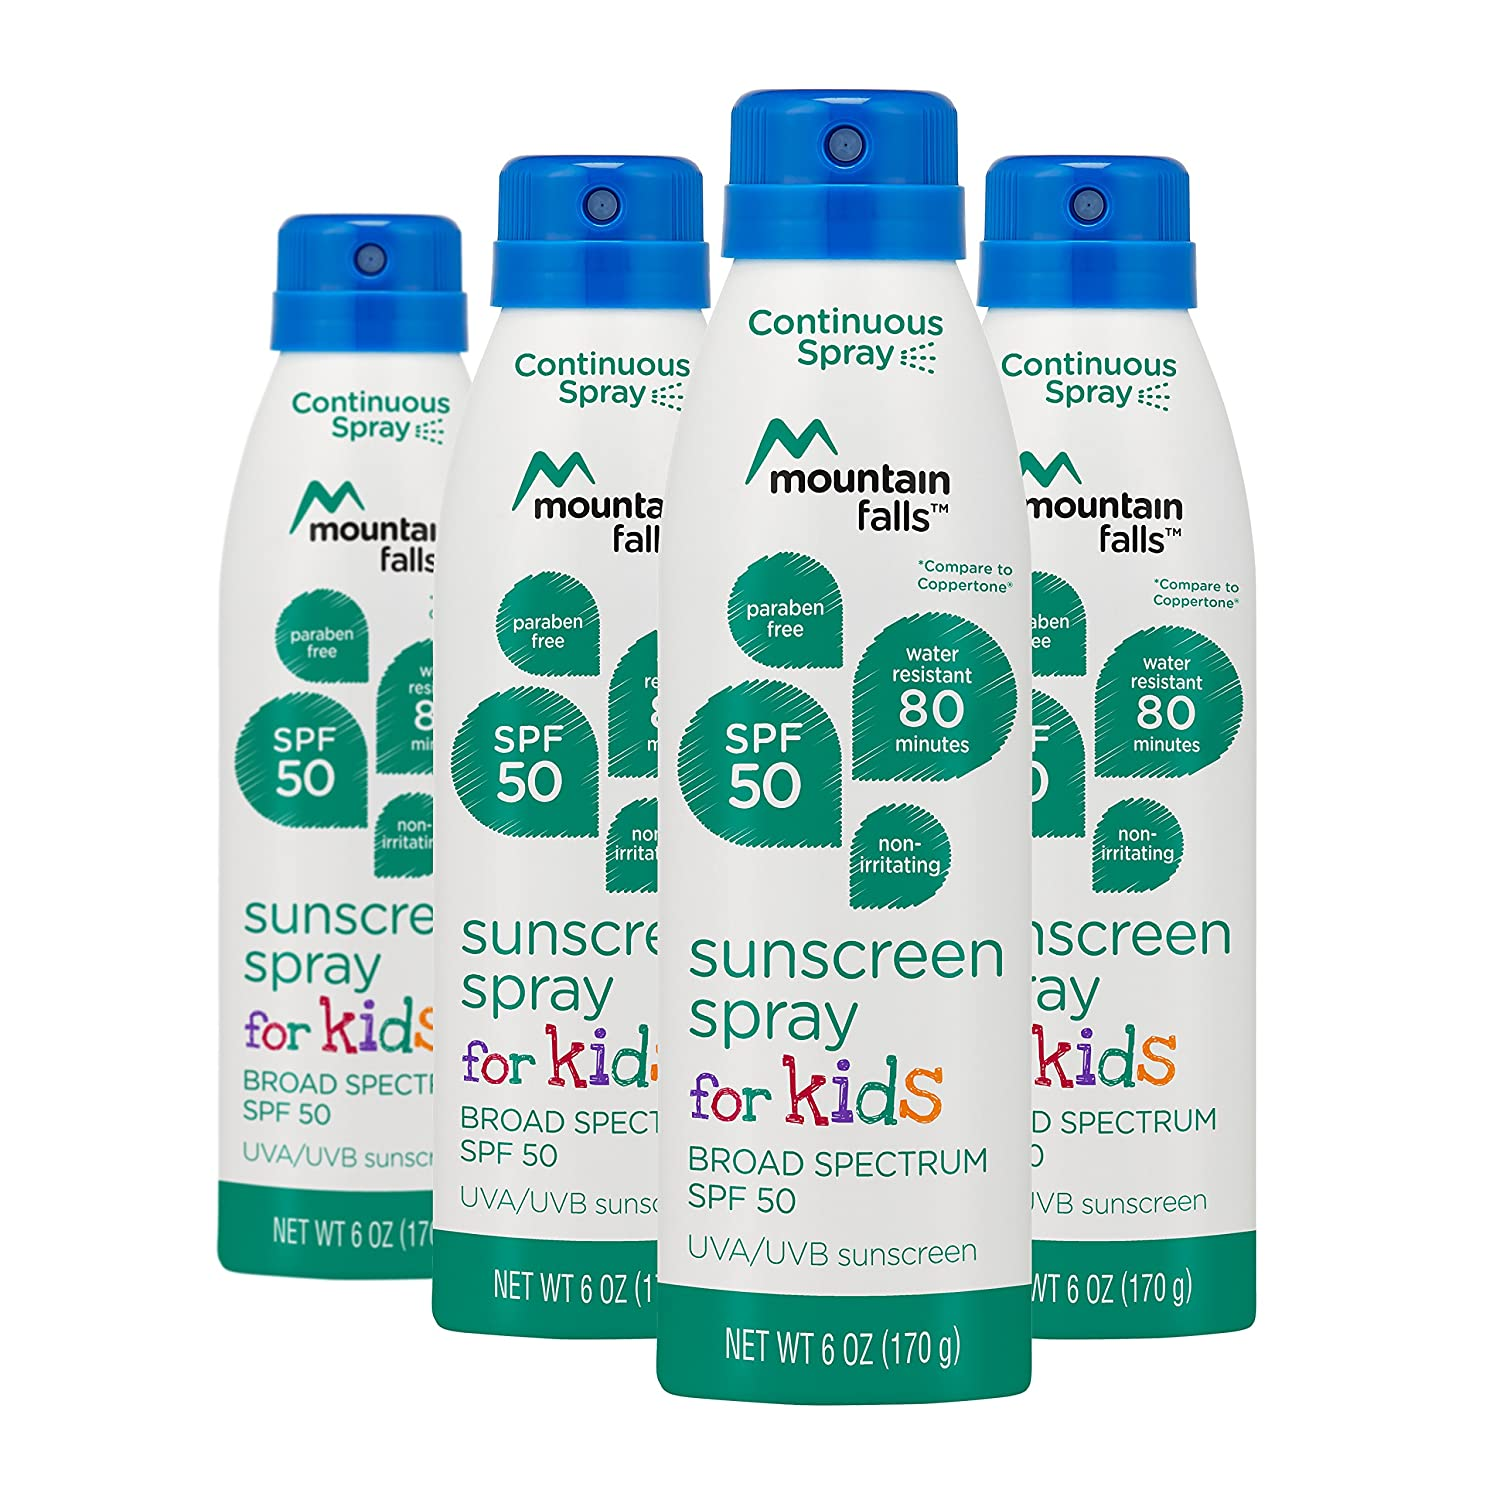 Mountain Falls Kids Sunscreen Continuous Spray, SPF 50 Broad Spectrum UVA/UVB Protection, Compare to Coppertone, 6 Ounce (Pack of 2) Vi-Jon 727AA